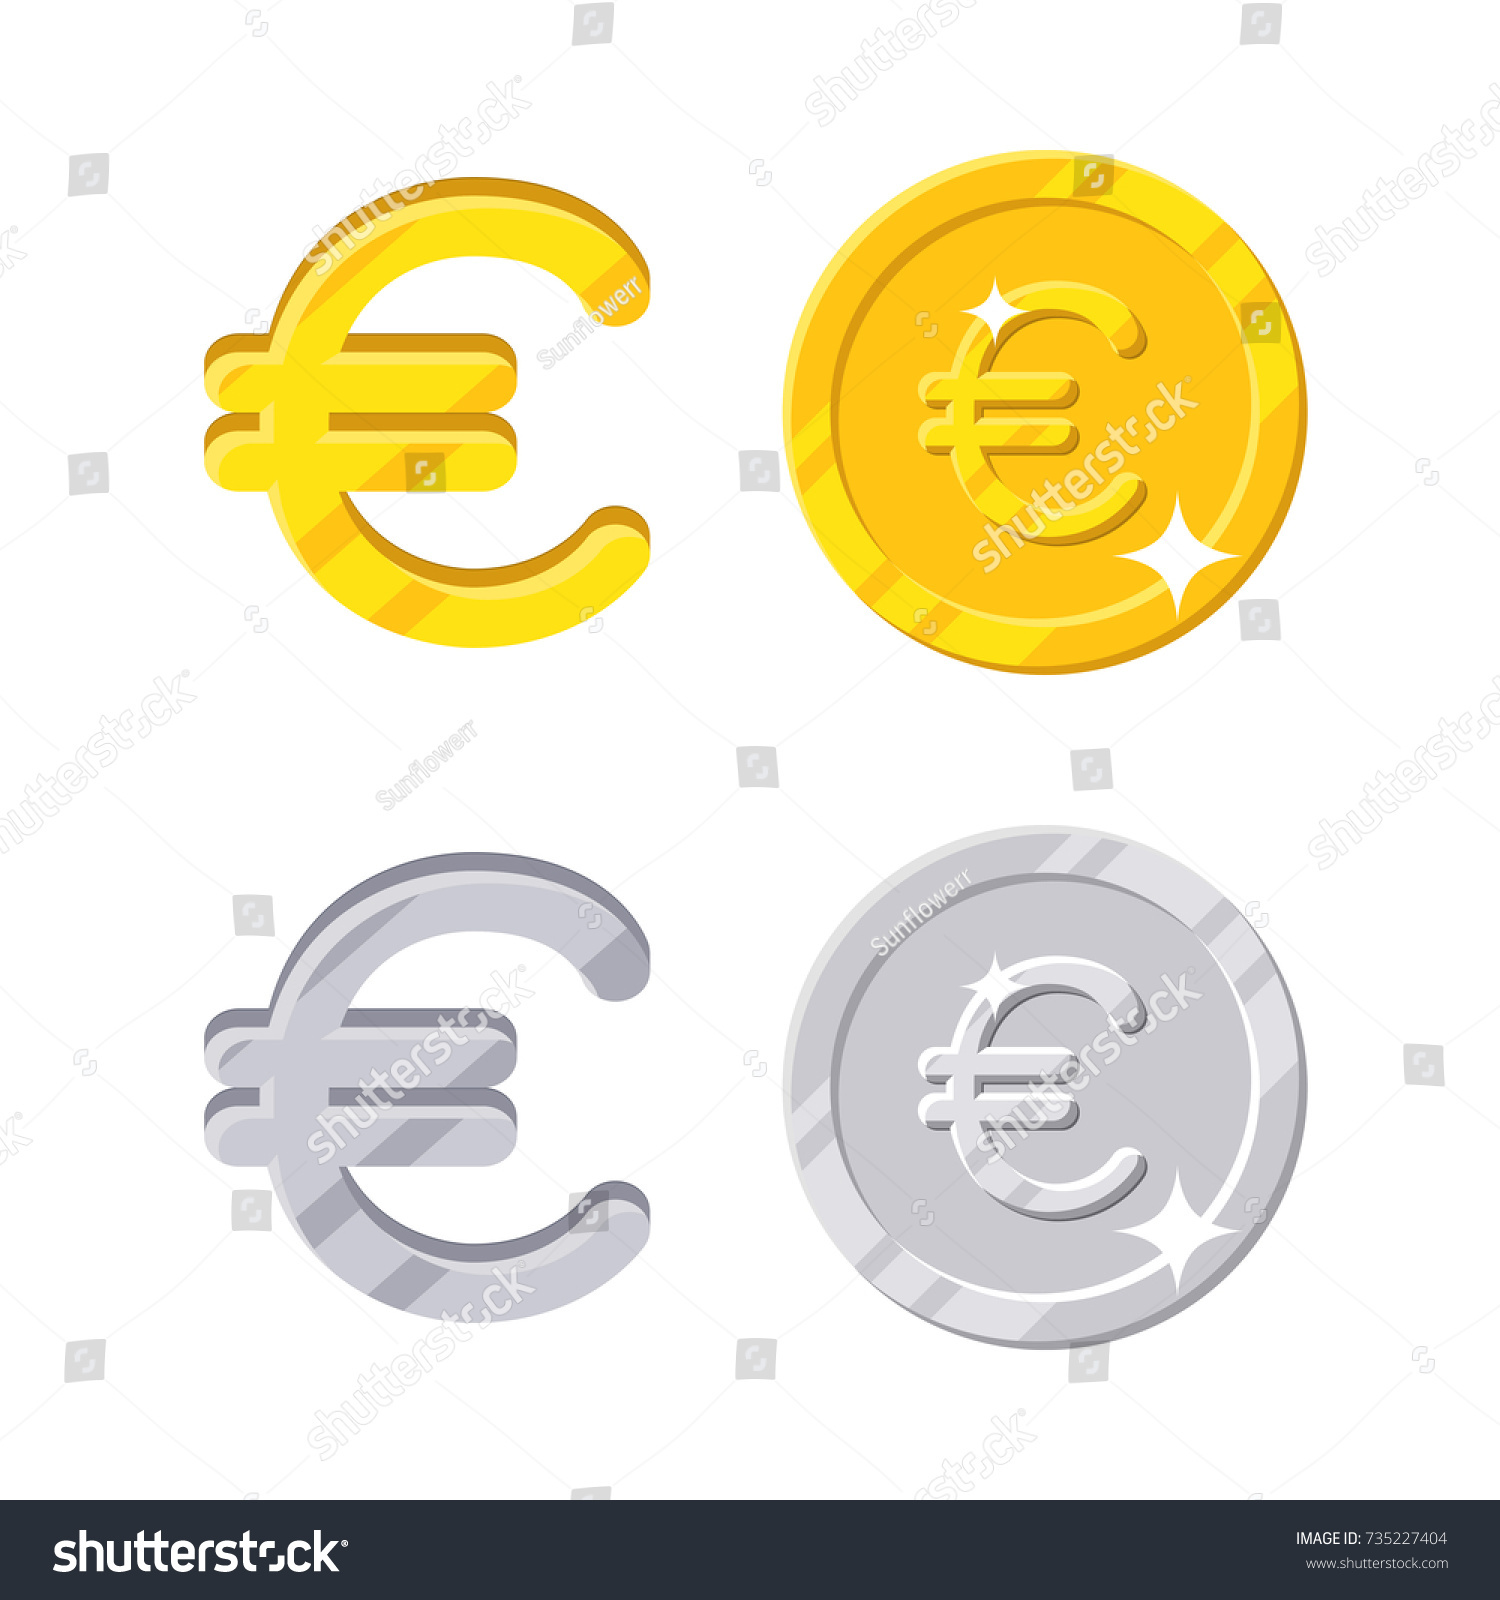 Euro sign gold silver symbol europa stock vector 735227404 euro sign gold and silver symbol of the europa currency and coins vector in biocorpaavc Images